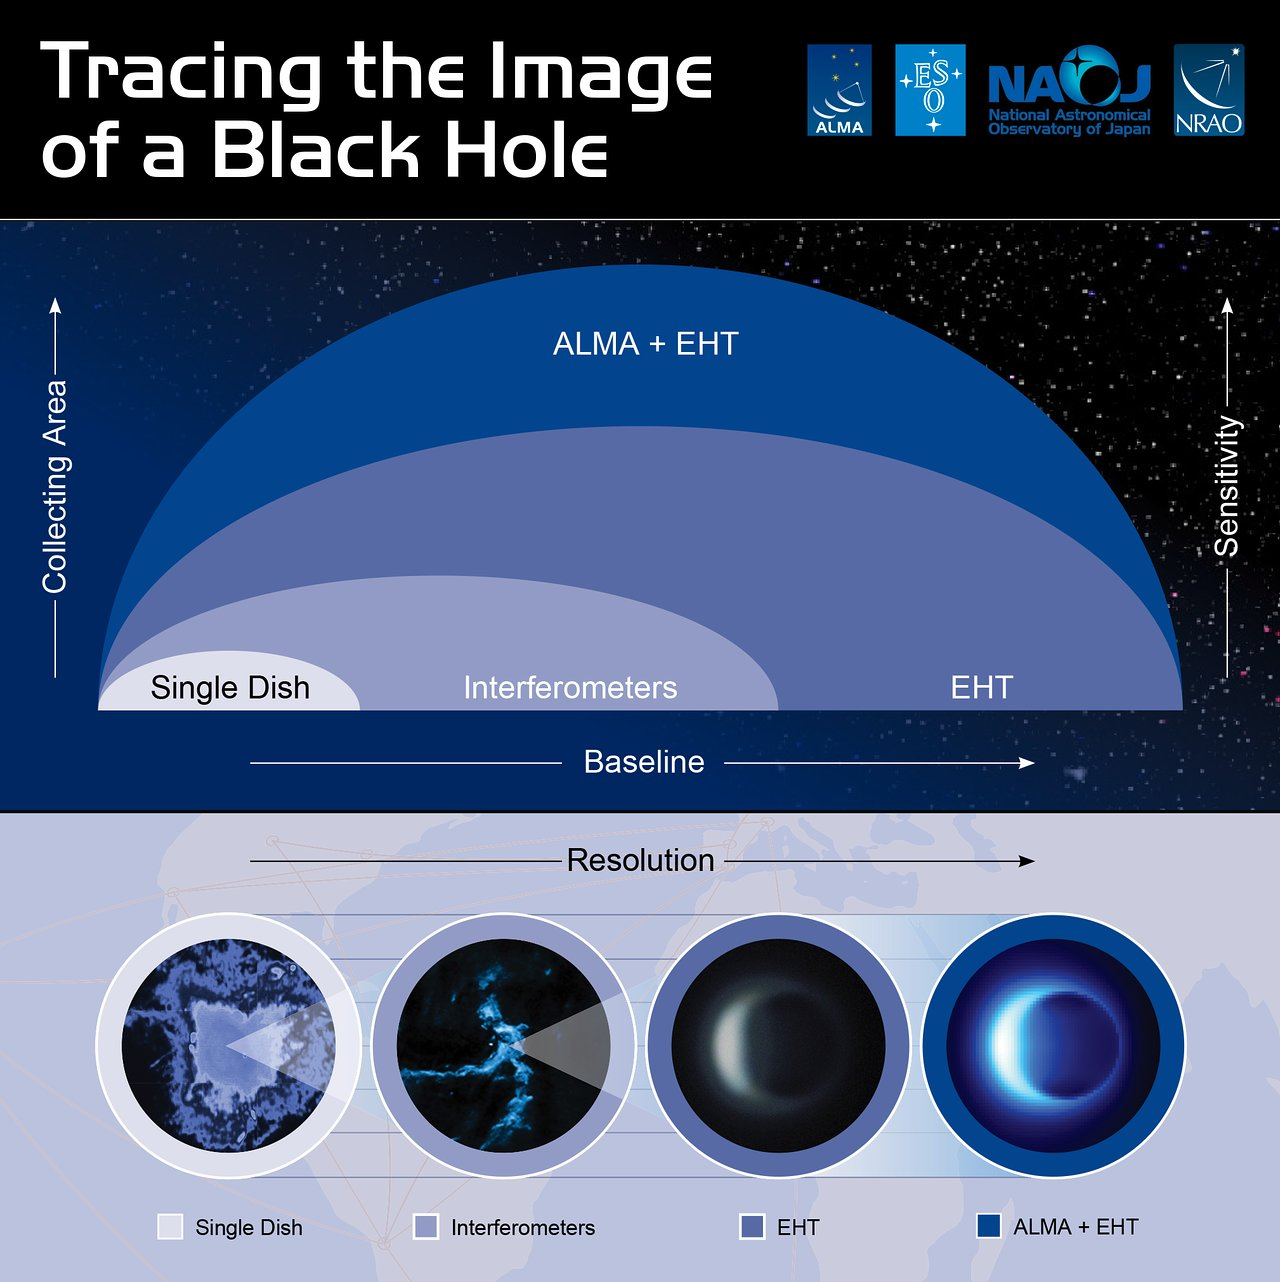 This infographic illustrates how ALMA contributes to the EHT observation